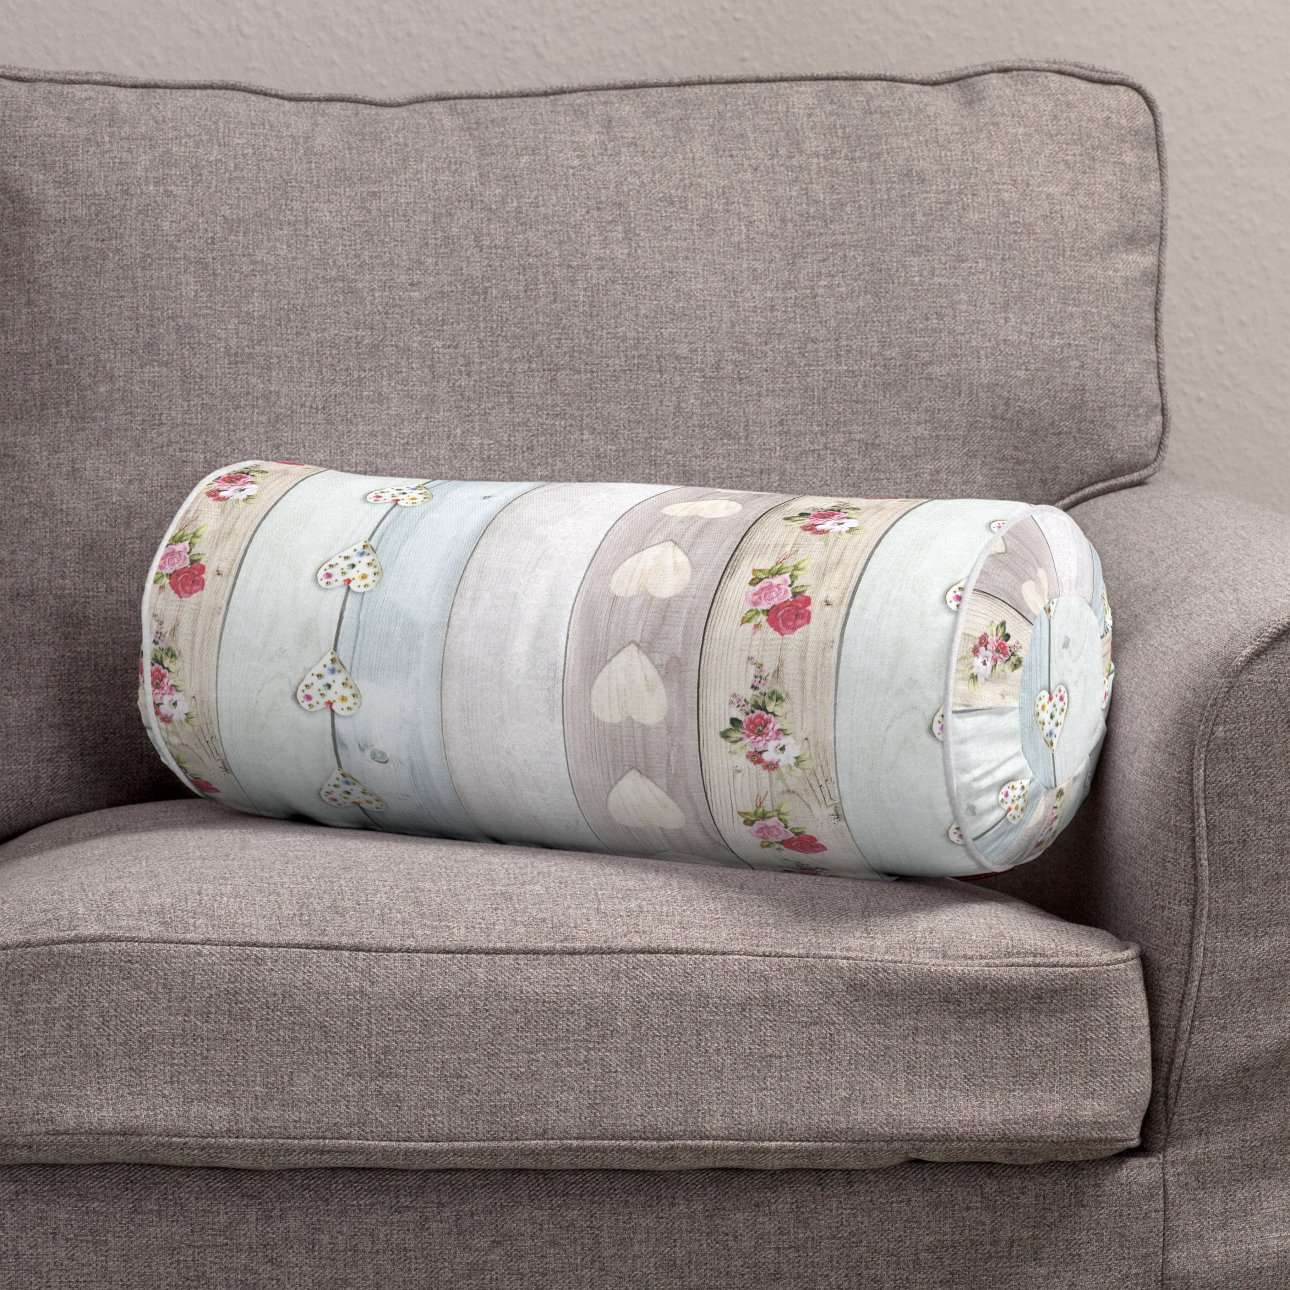 Bolster cushion with pleats Ø 20 × 50 cm (8 × 20 inch) in collection Ashley, fabric: 140-20